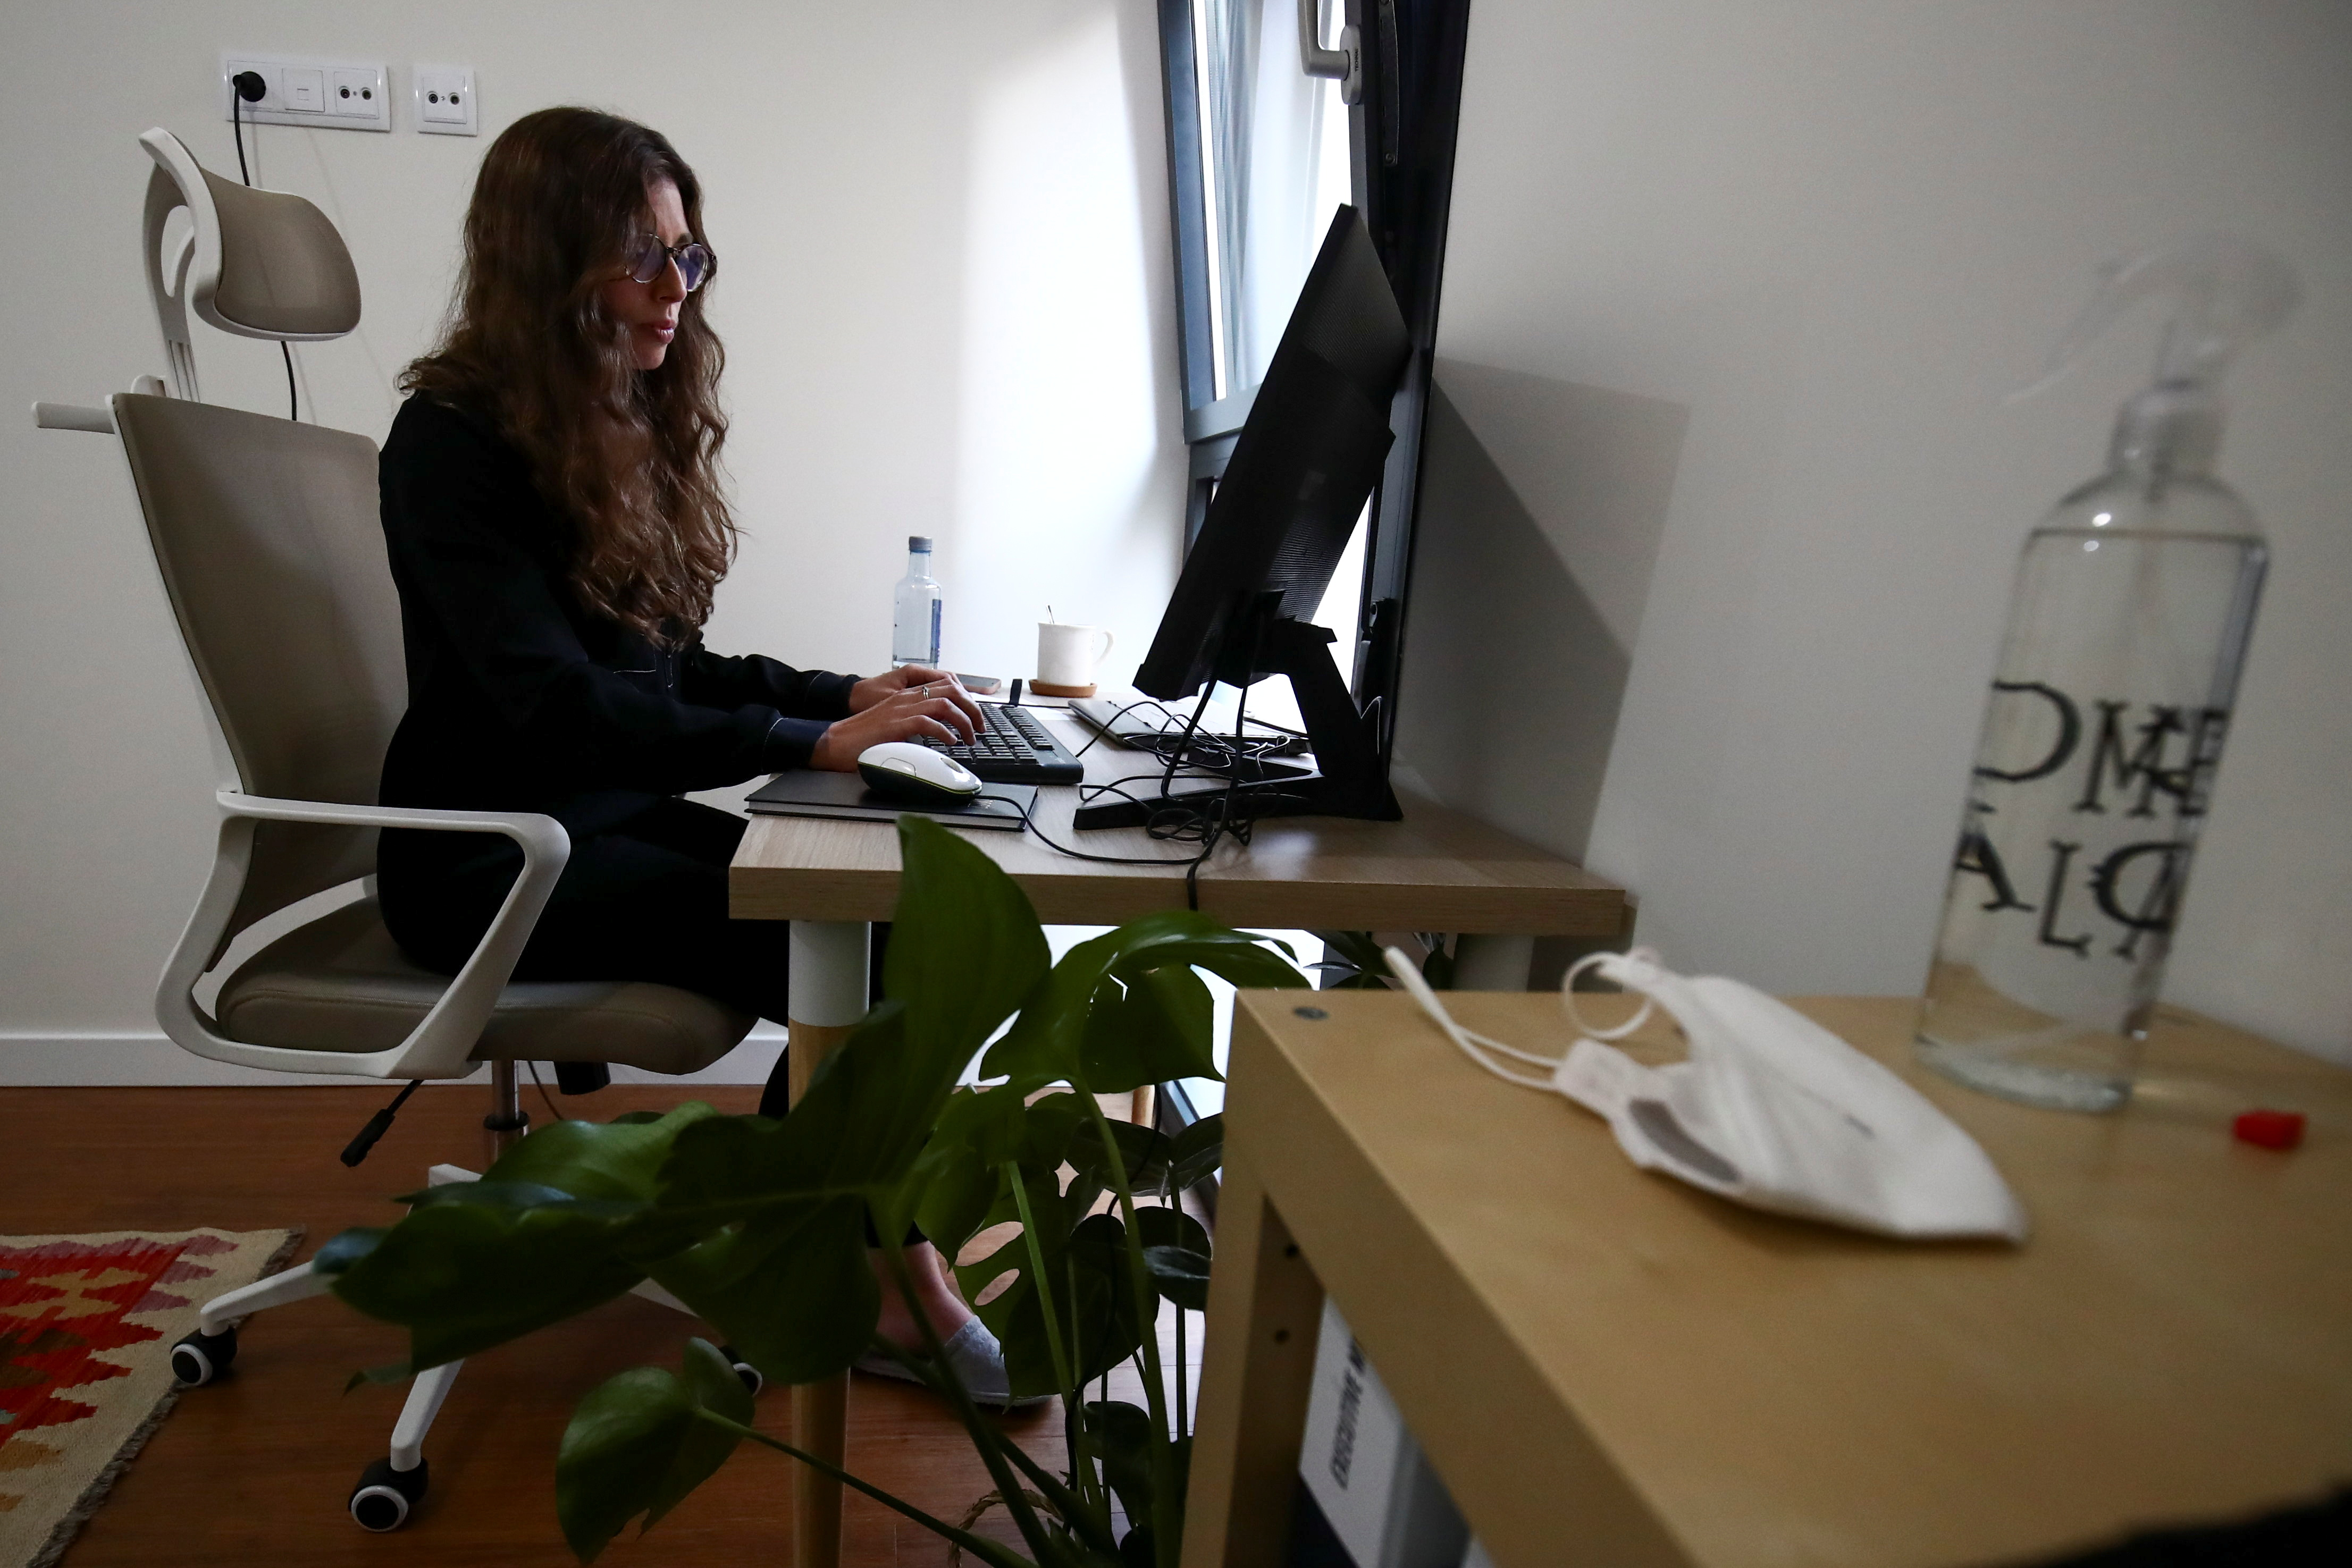 Blanca Lorca wears a casual outfit as she works at her home in Madrid, Spain, September 30, 2021. REUTERS/Sergio Perez